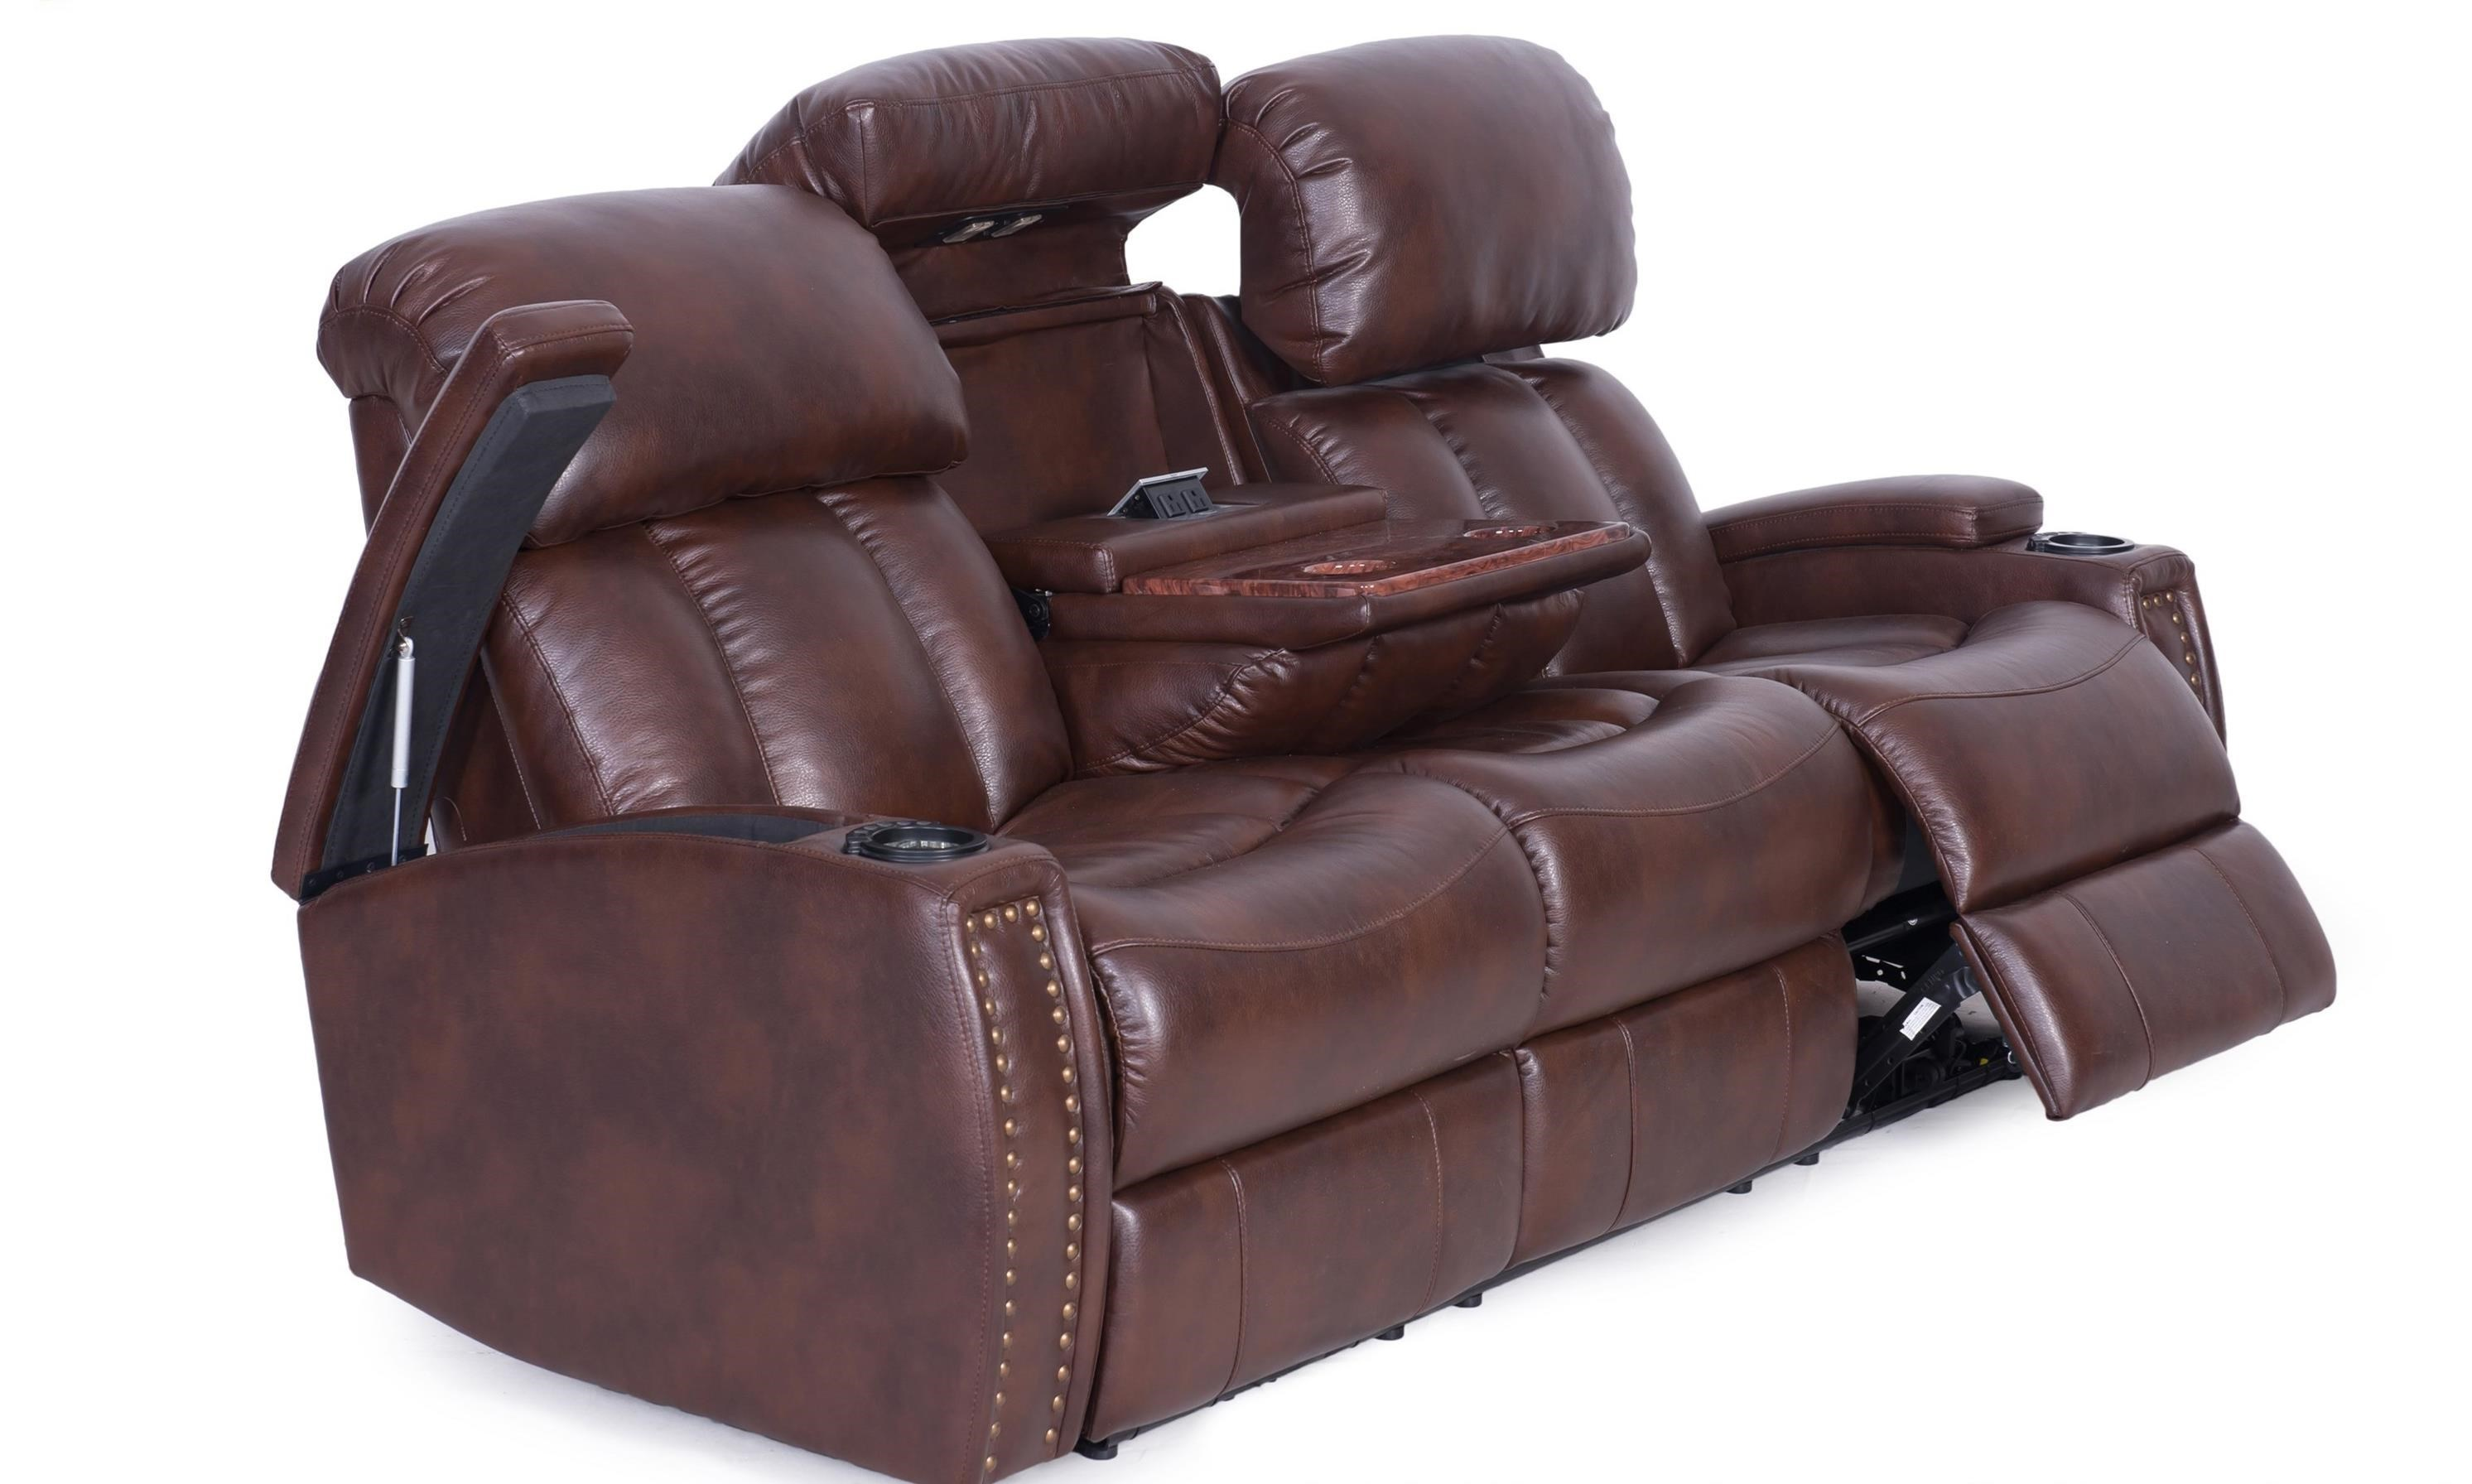 399 Power Reclining Sofa with USB Ports and Storage Arms by Synergy Home Furnishings  sc 1 st  Darvin Furniture & Synergy Home Furnishings 399 Power Reclining Sofa with USB Ports ... islam-shia.org